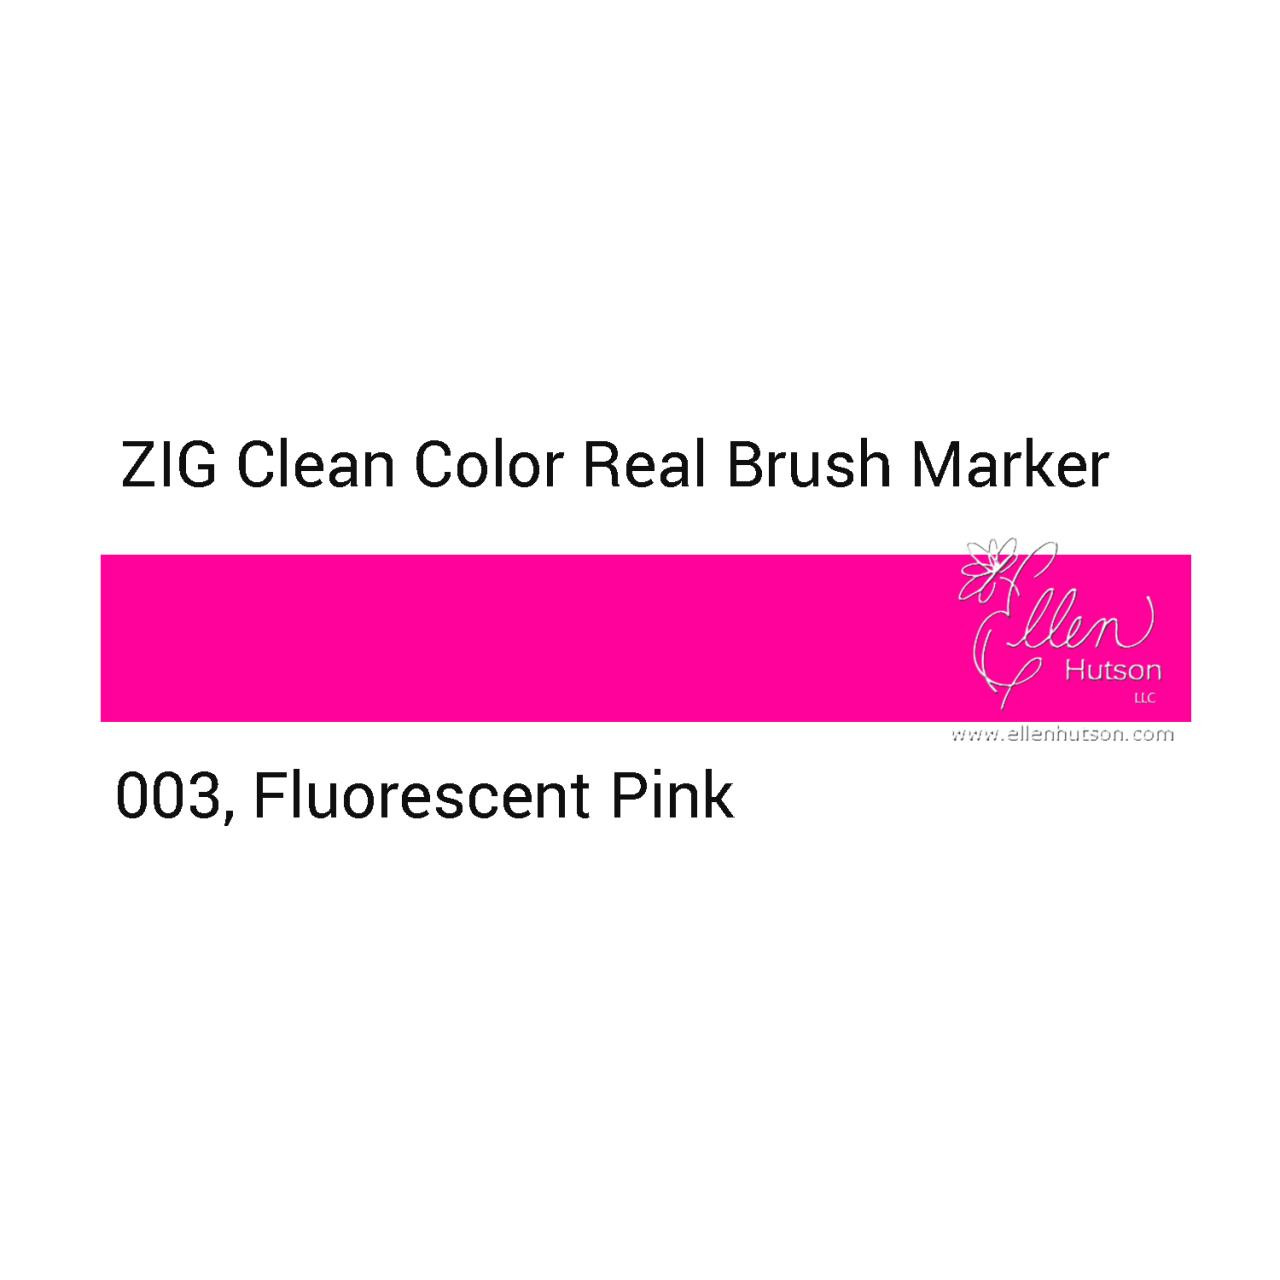 003 - Fluorescent Pink, ZIG Clean Color Real Brush Marker -